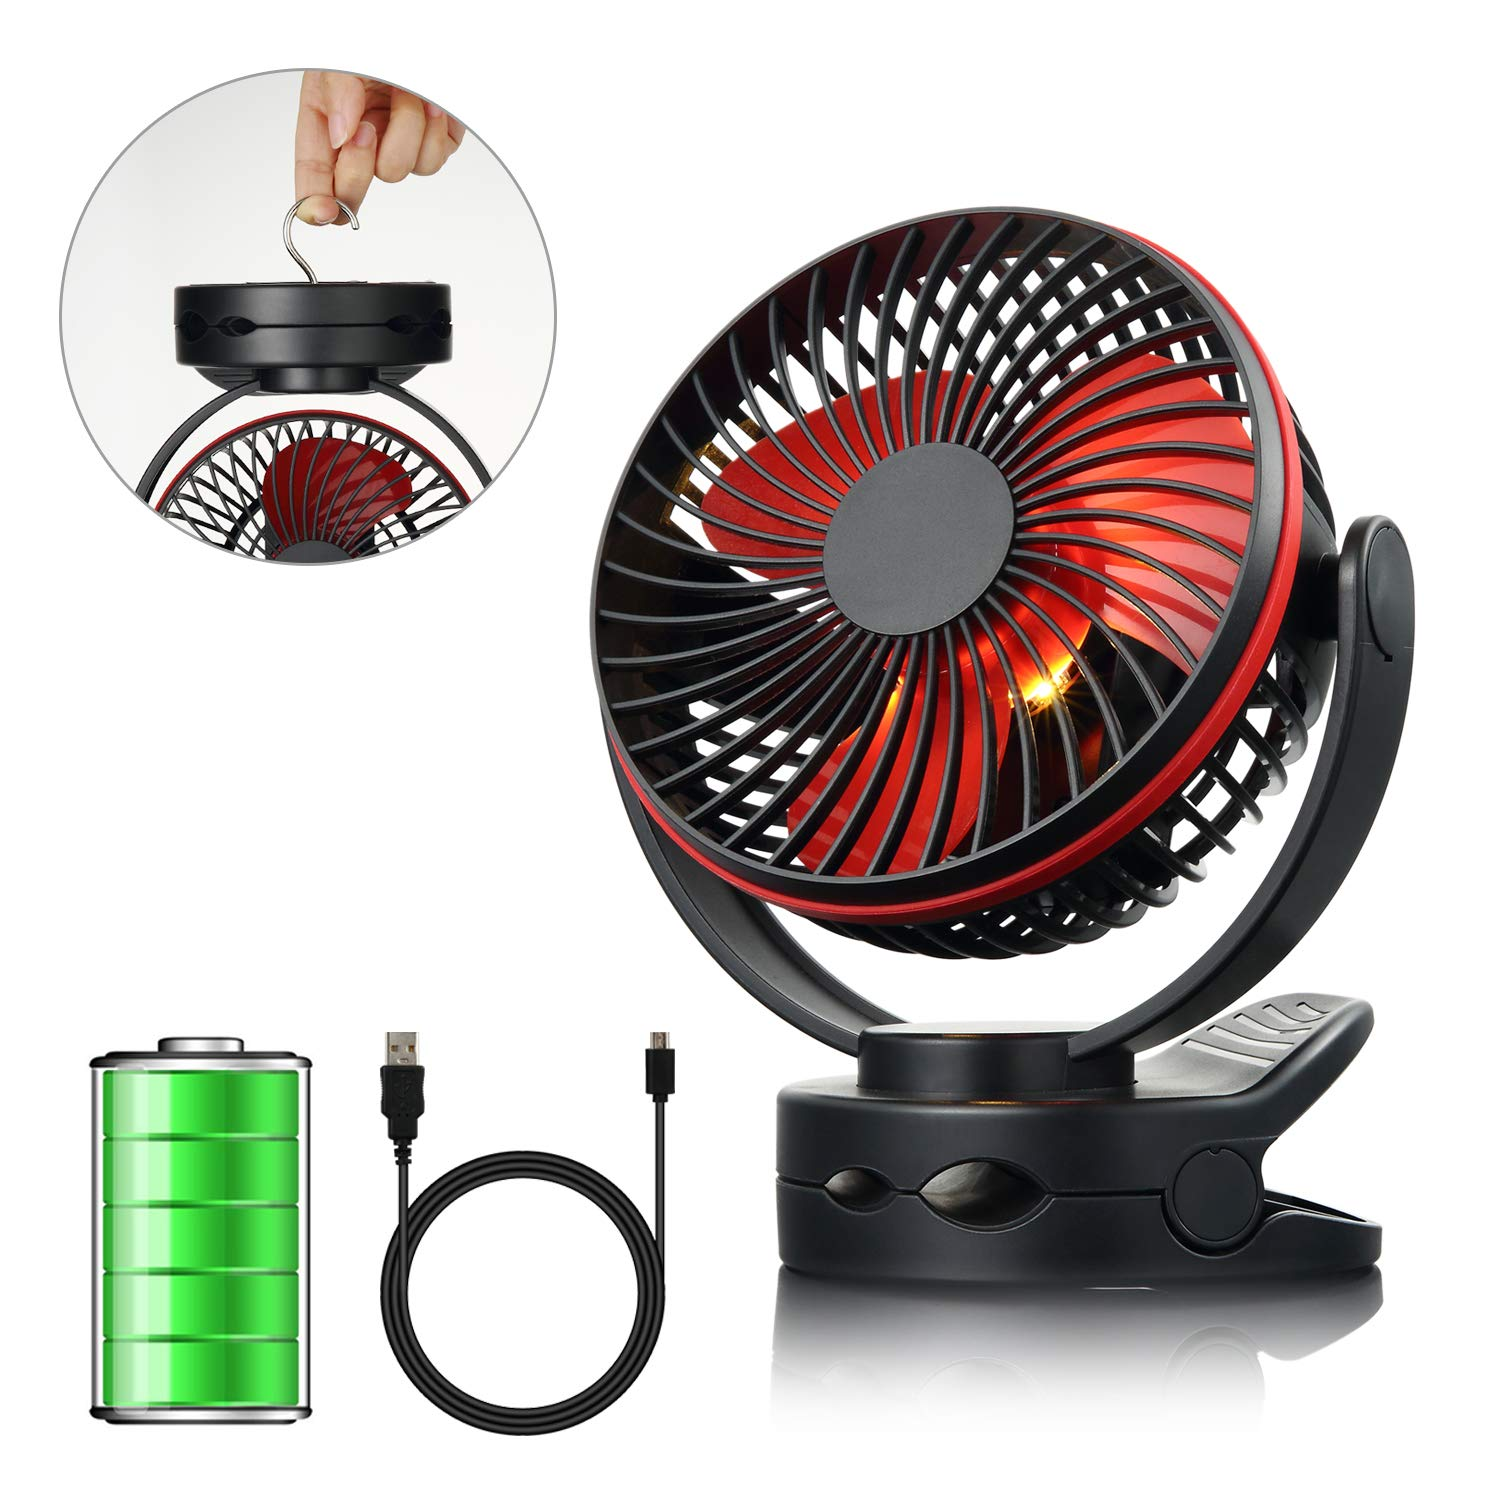 efluky 4 Speeds Desk Clip Fan with Two Adjustable Lights and 3600mAh Rechargeable Battery Operated Fan, Portable USB Fan for Baby Stroller Crib,Camping, BBQ Outdoor Indoor Activity, Black by efluky